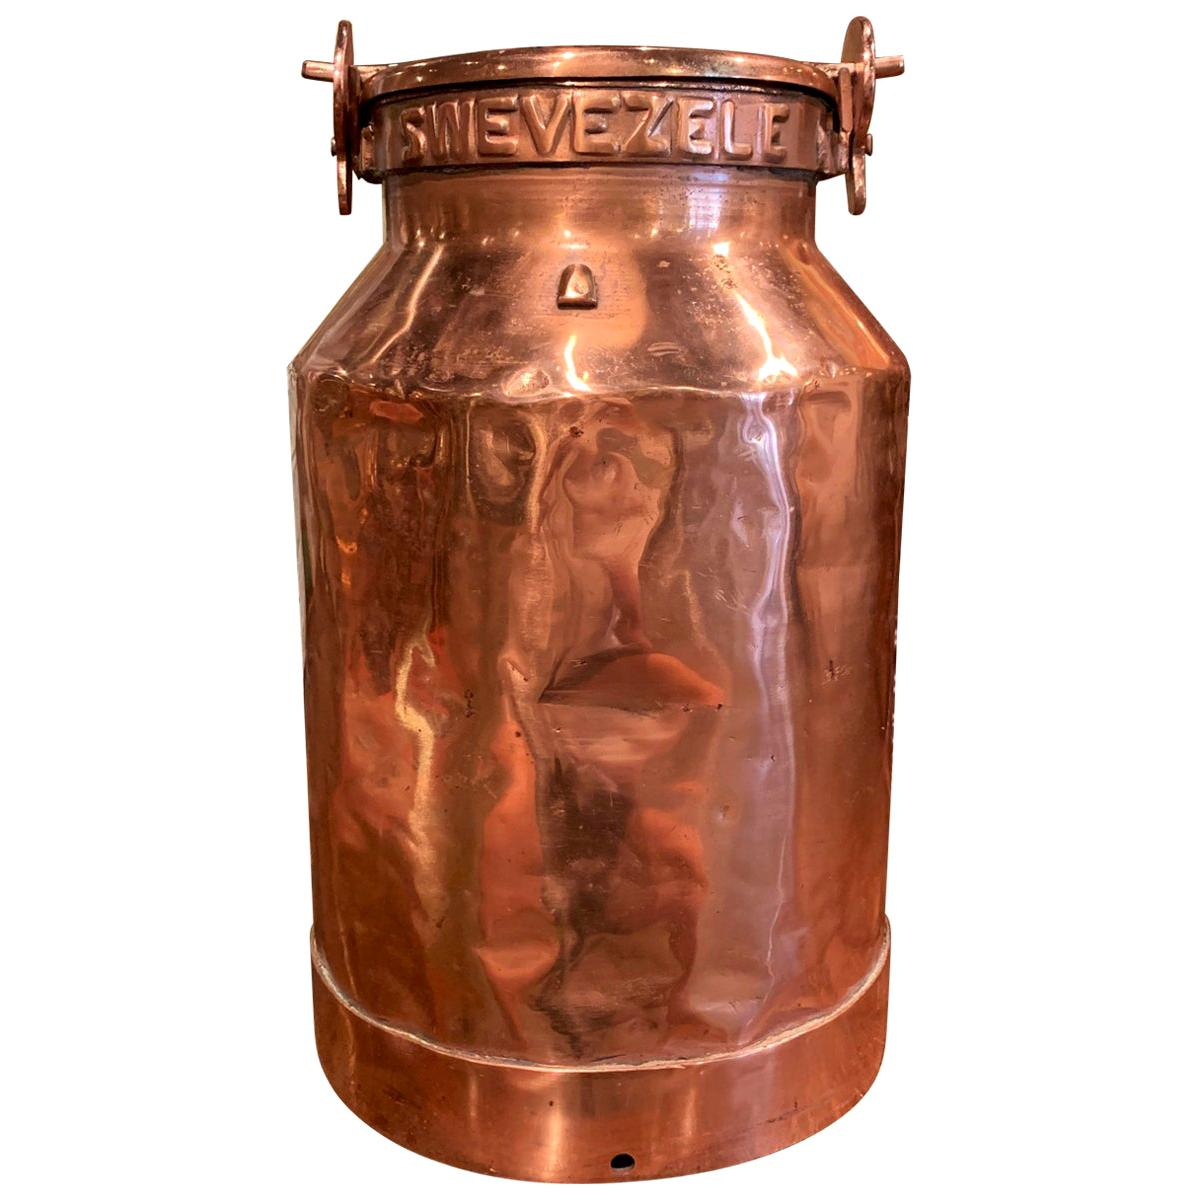 19th Century Belgium Polished Copper Plated Milk Container with Handles and Lid